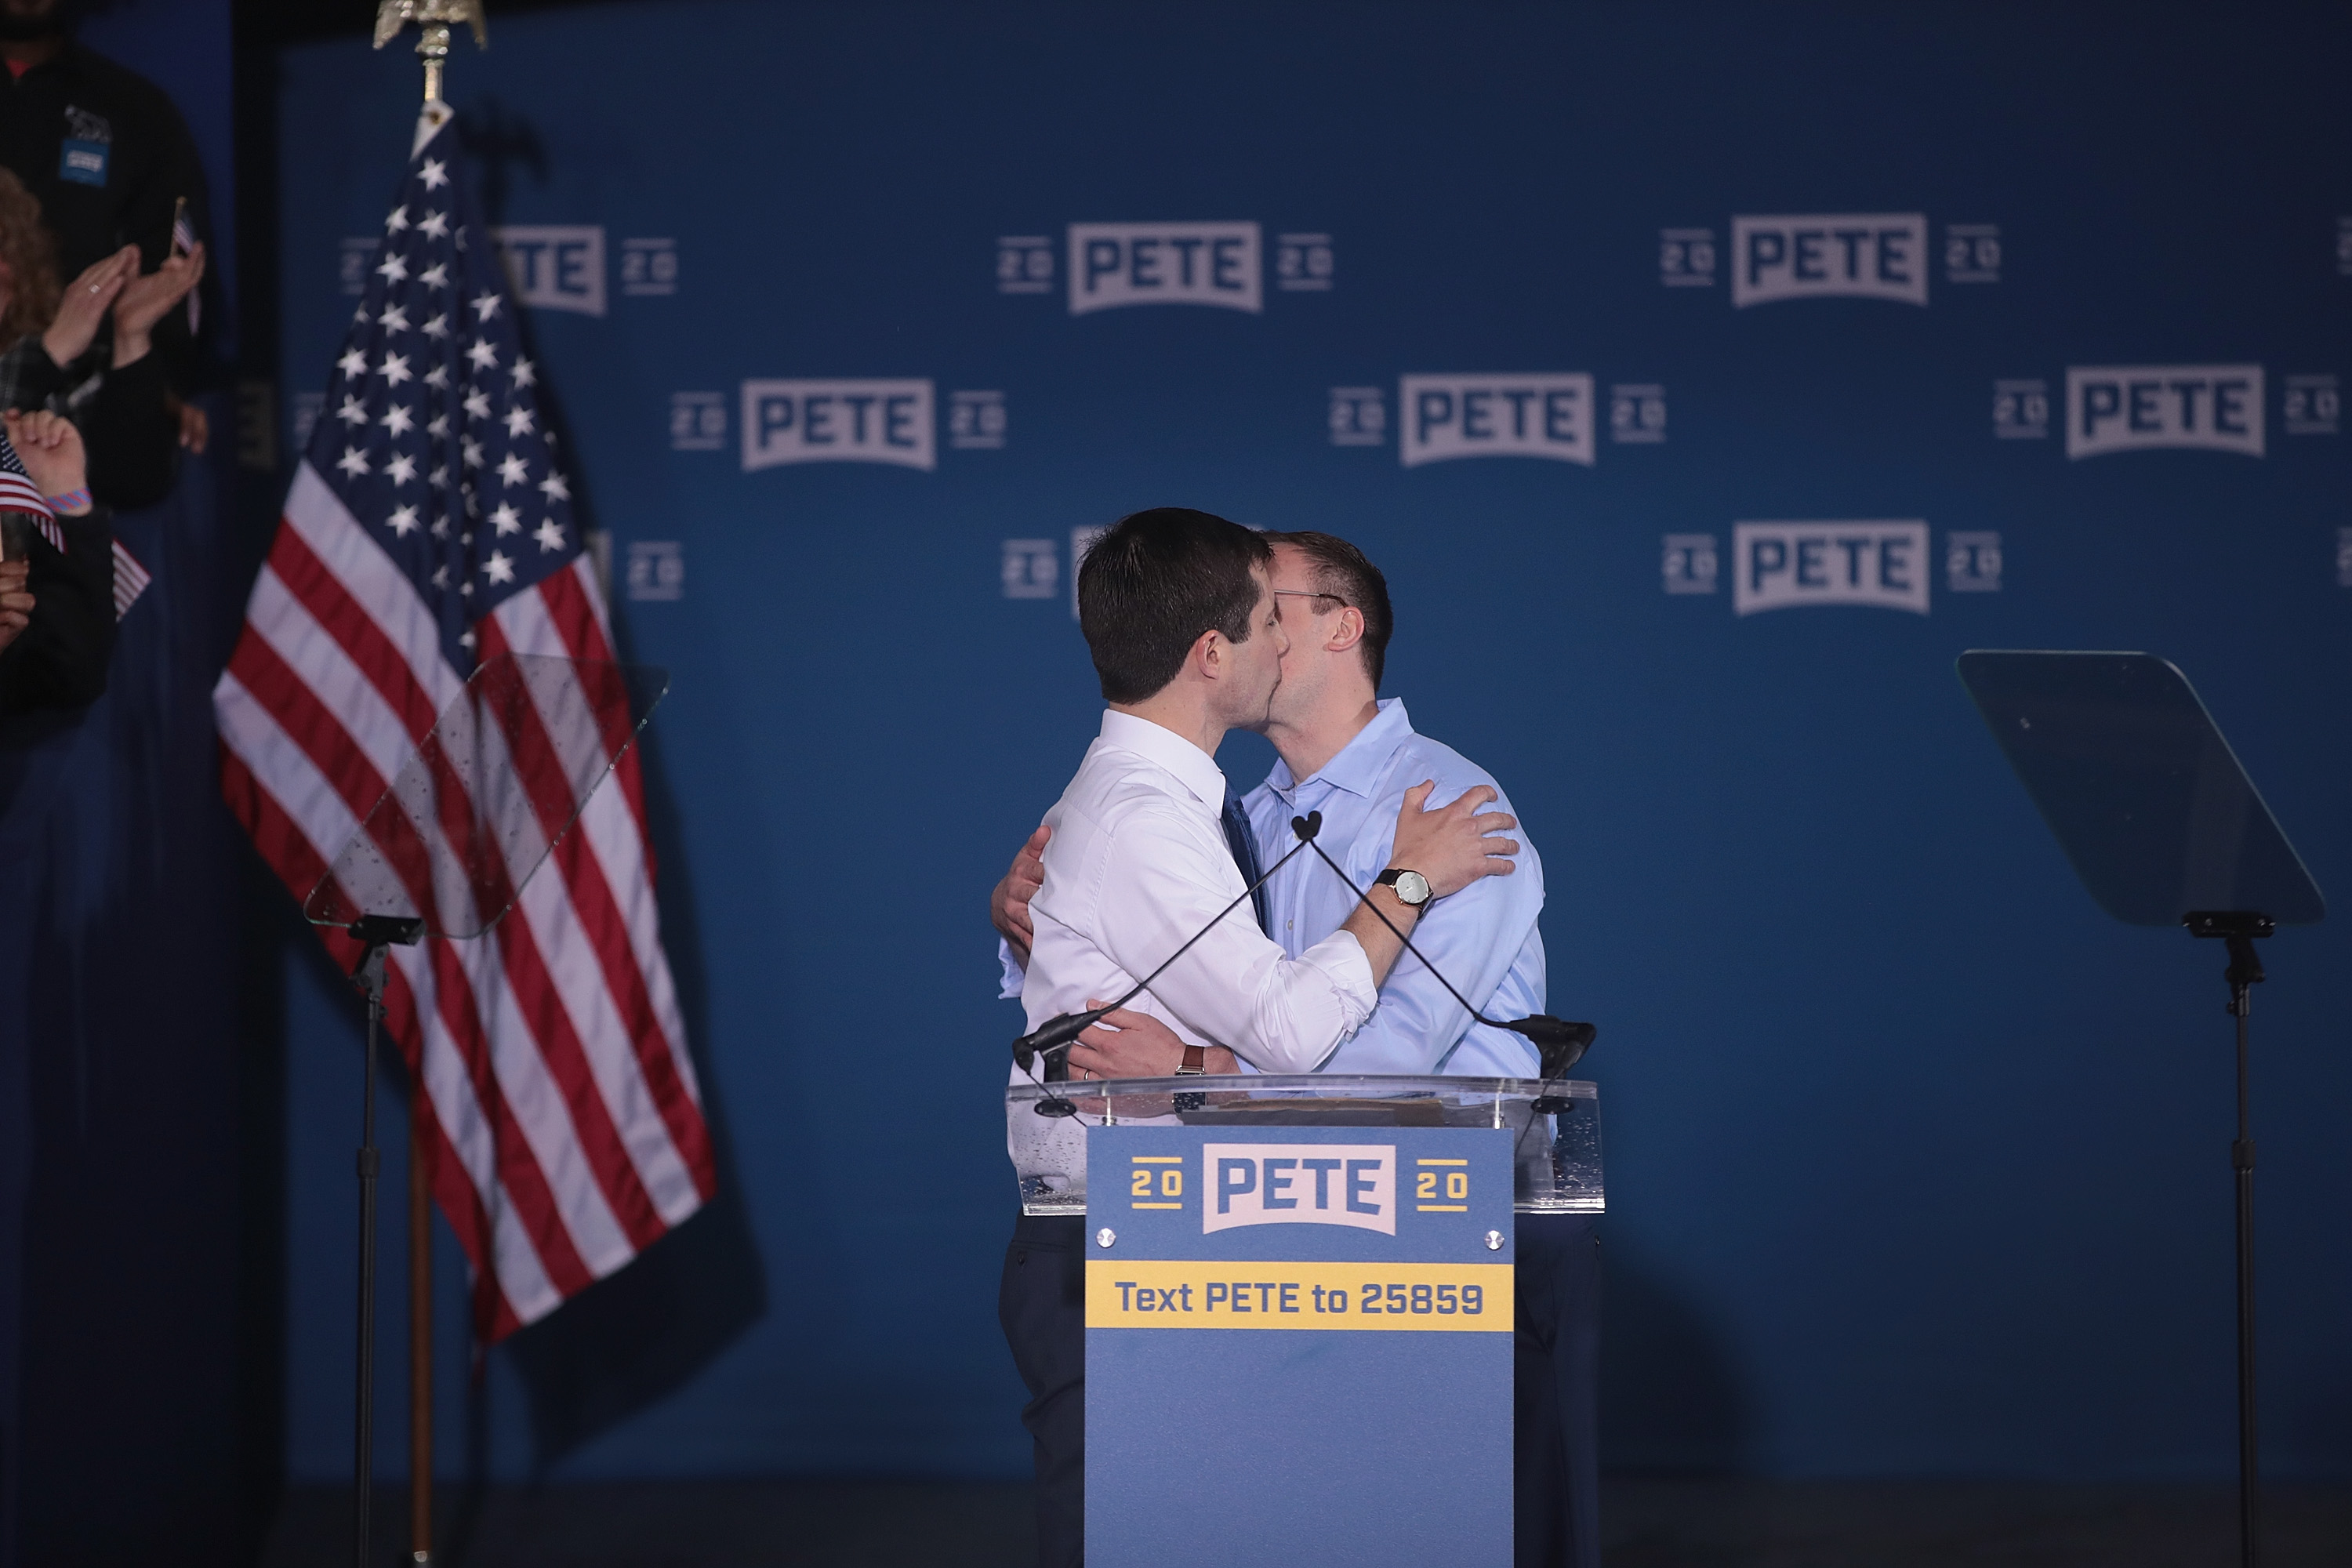 SOUTH BEND, INDIANA - APRIL 14: South Bend Mayor Pete Buttigieg kisses his husband Chasten Glezman announcing that he will be seeking the Democratic nomination for president during a rally in the old Studebaker car factory on April 14, 2019 in South Bend, Indiana. Buttigieg has been drumming up support for his run during several recent campaign swings through Iowa, where he will be retuning to continue his campaign later this week. (Photo by Scott Olson/Getty Images)